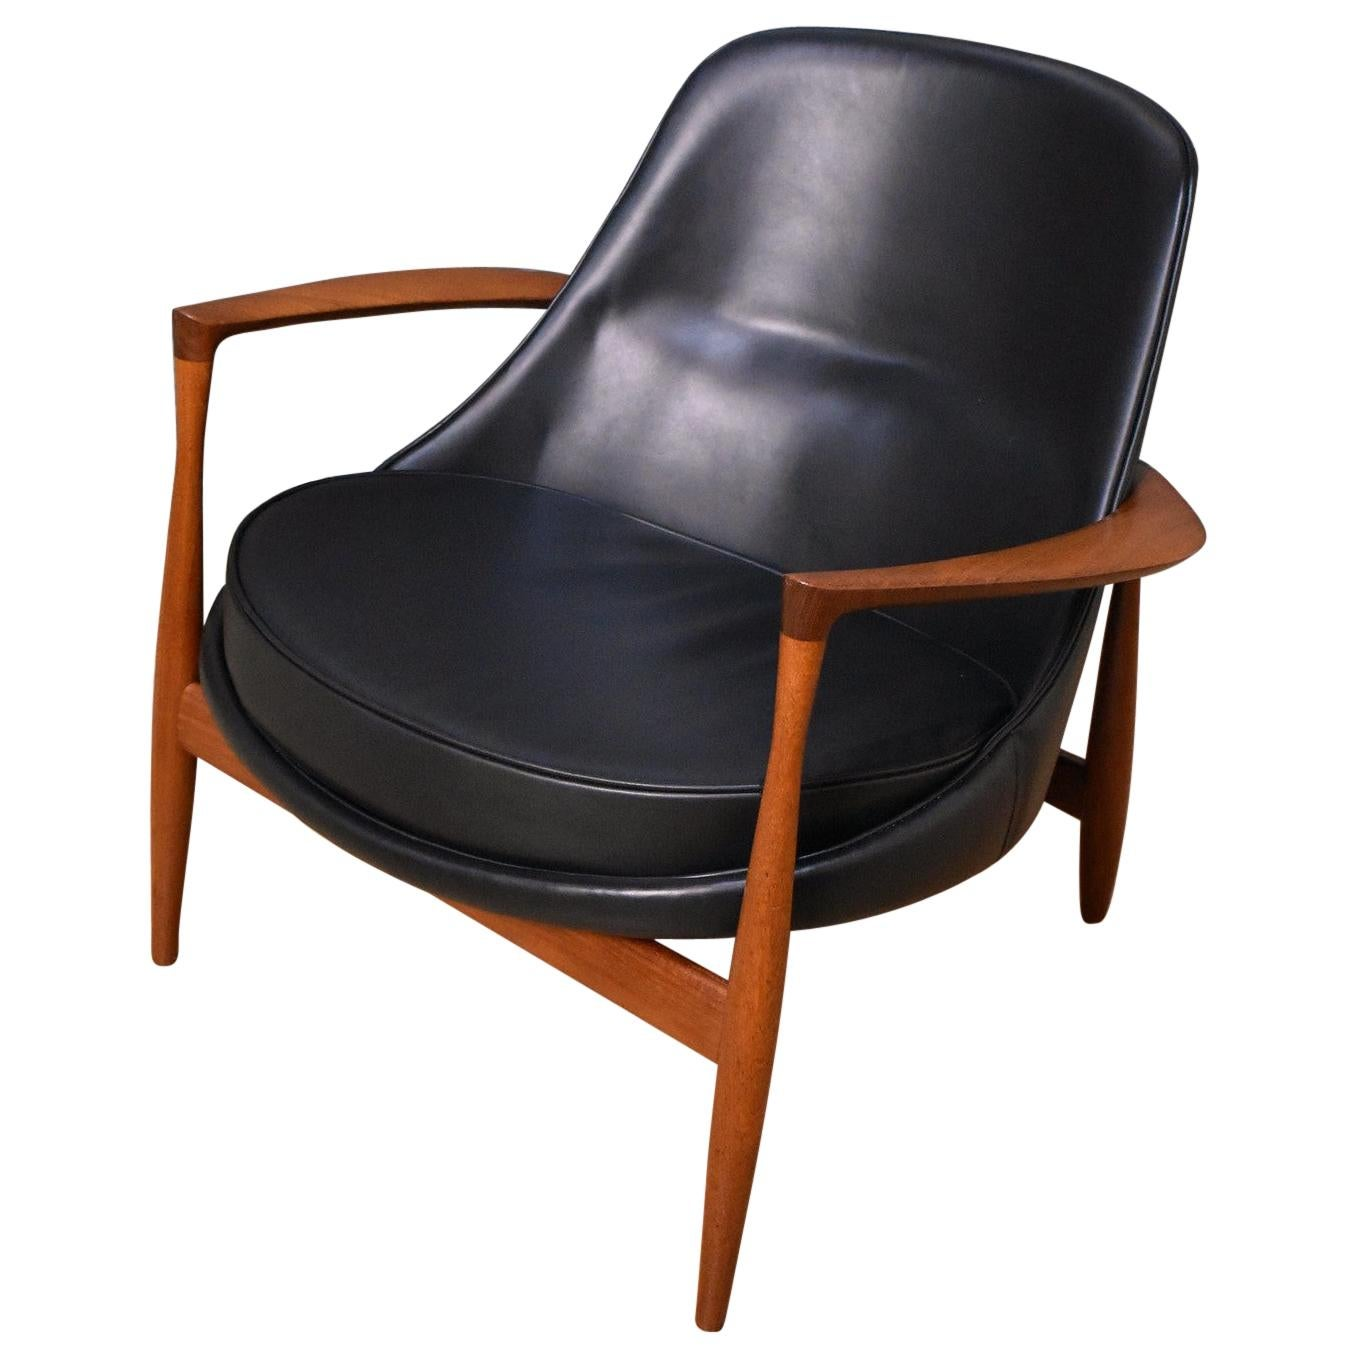 Ib Kofod-Larsen U-56 Elizabeth Chair for Christensen & Larsen